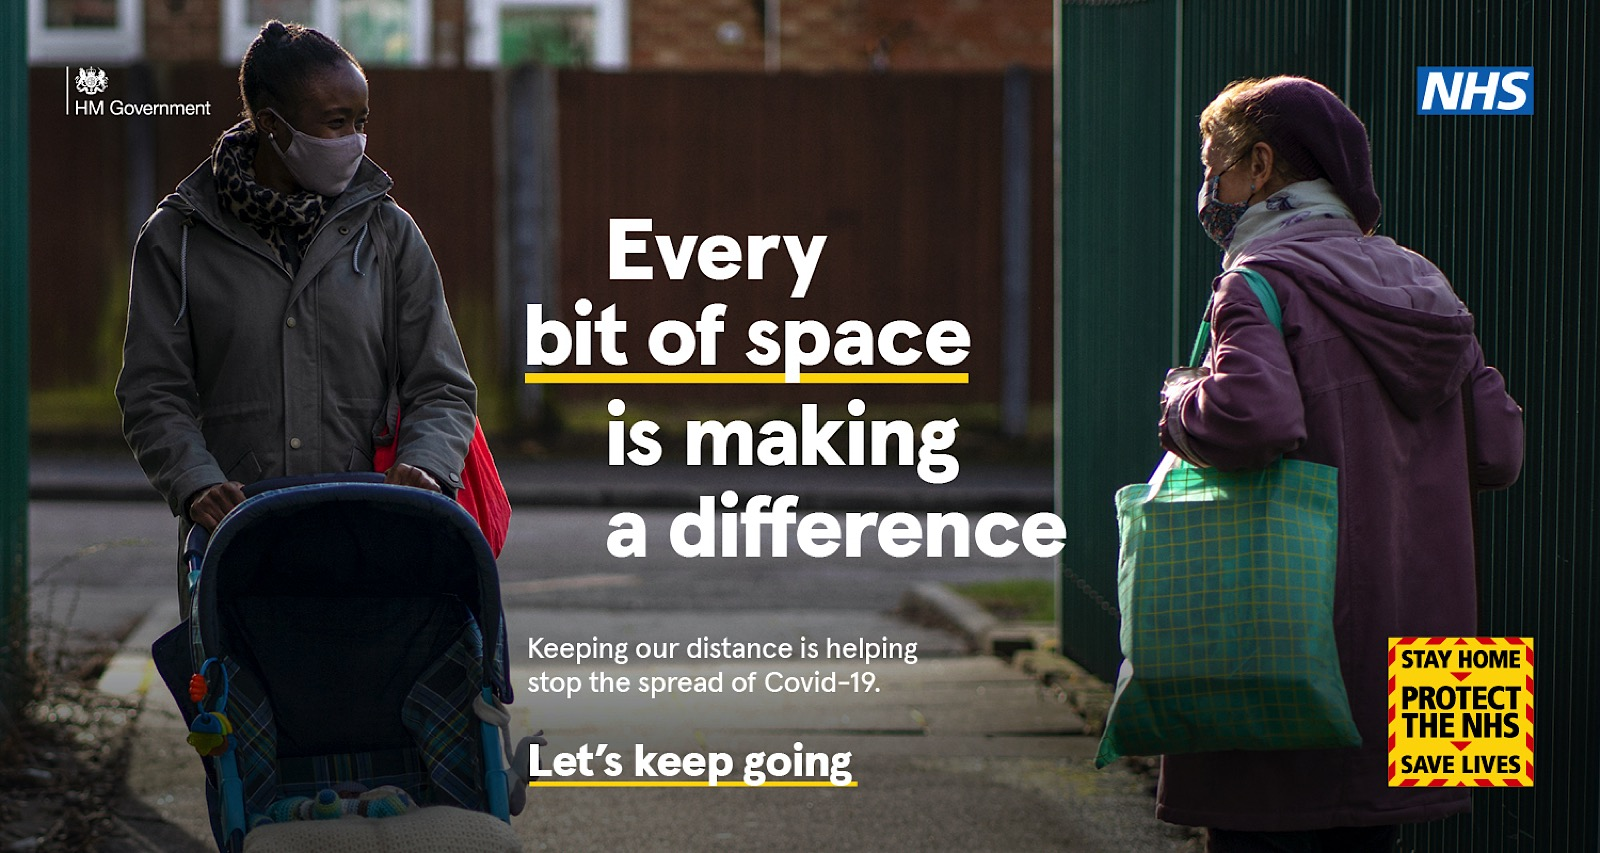 Campaign Image from Let's Keep Going NHS and UK government Covid-19 Campaign showing two women talking in street